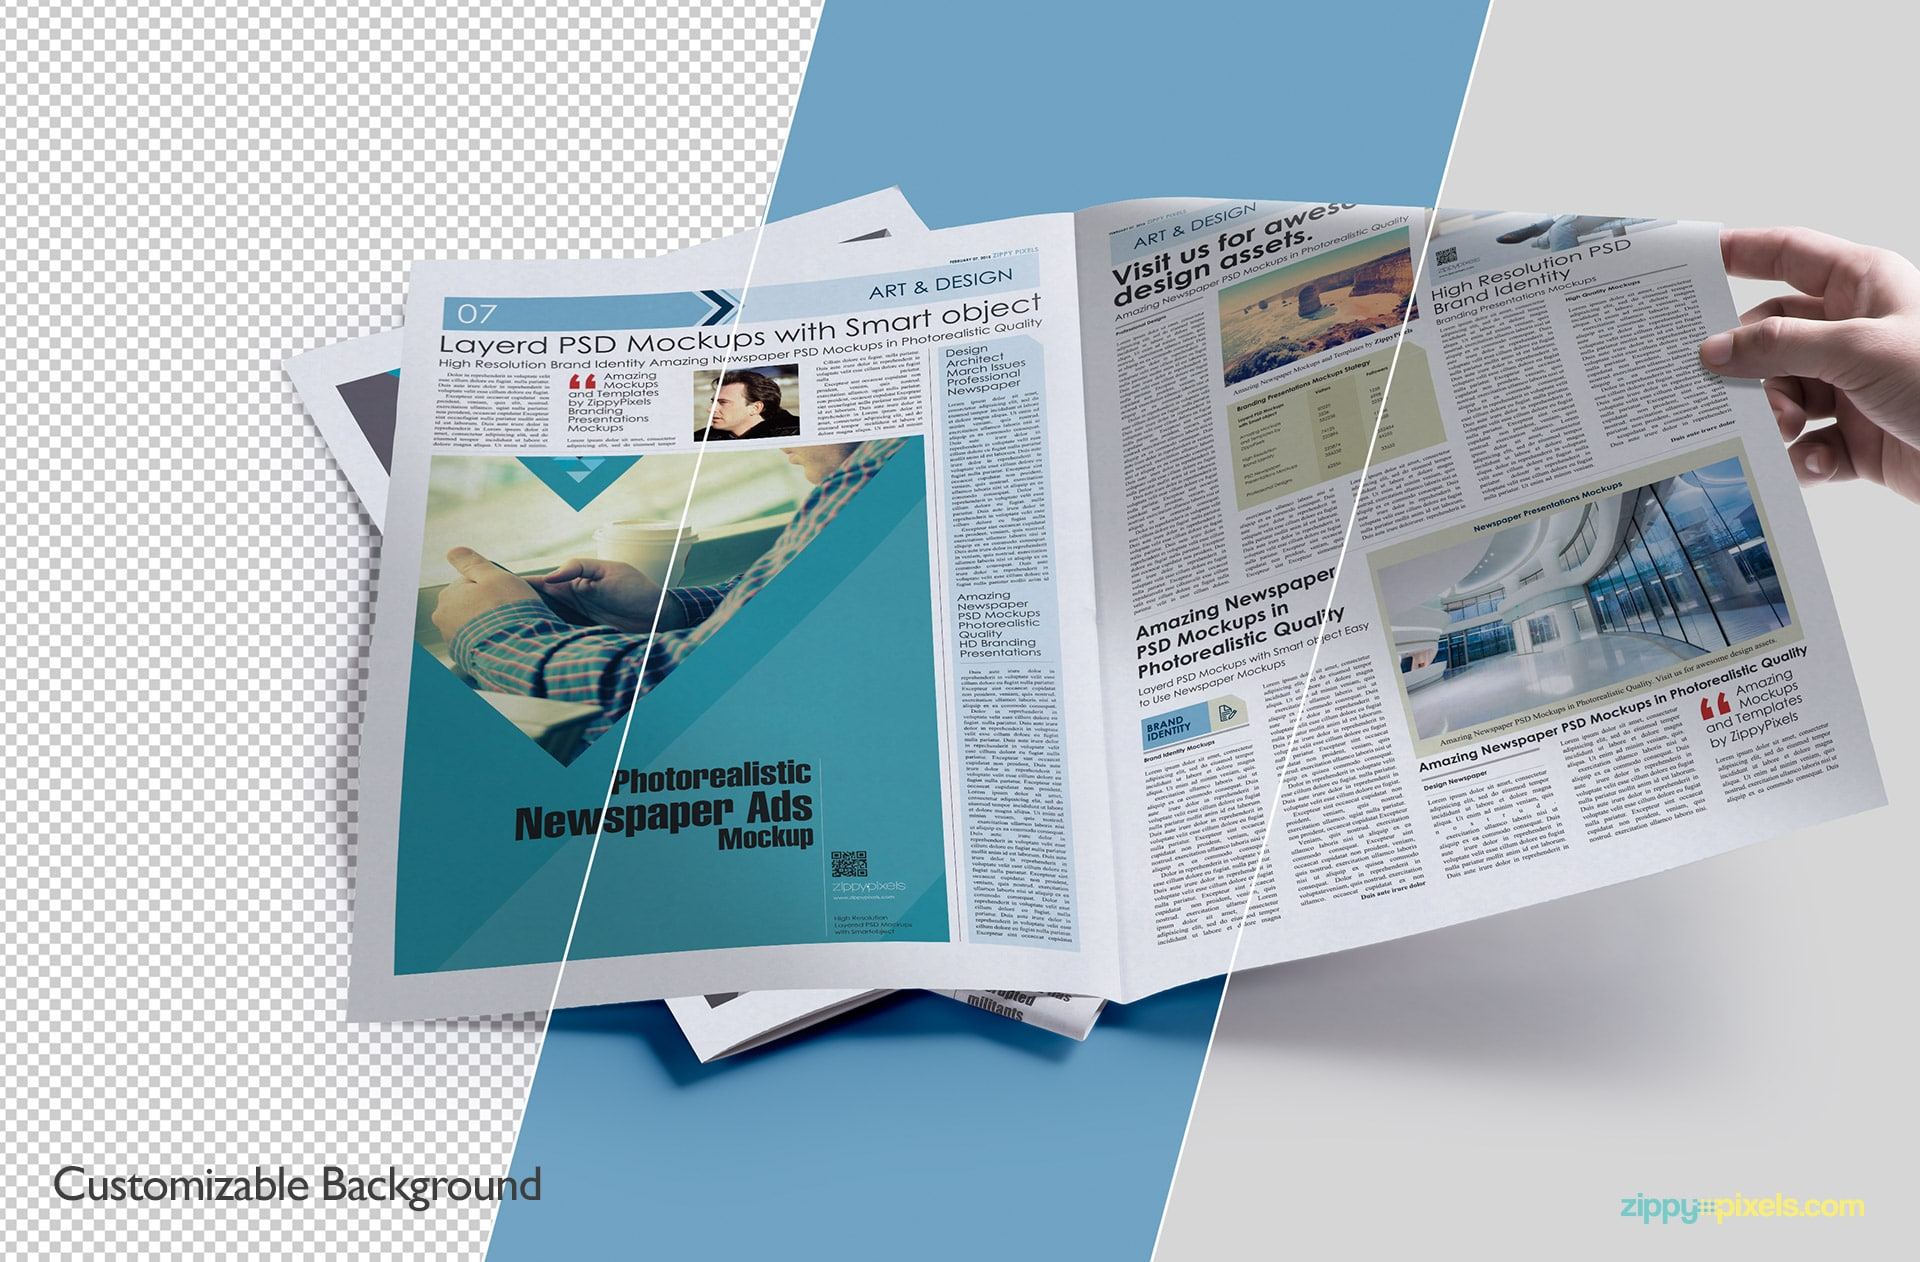 Advanced-newspaper-mockup-customizable-backgrounds-824x542